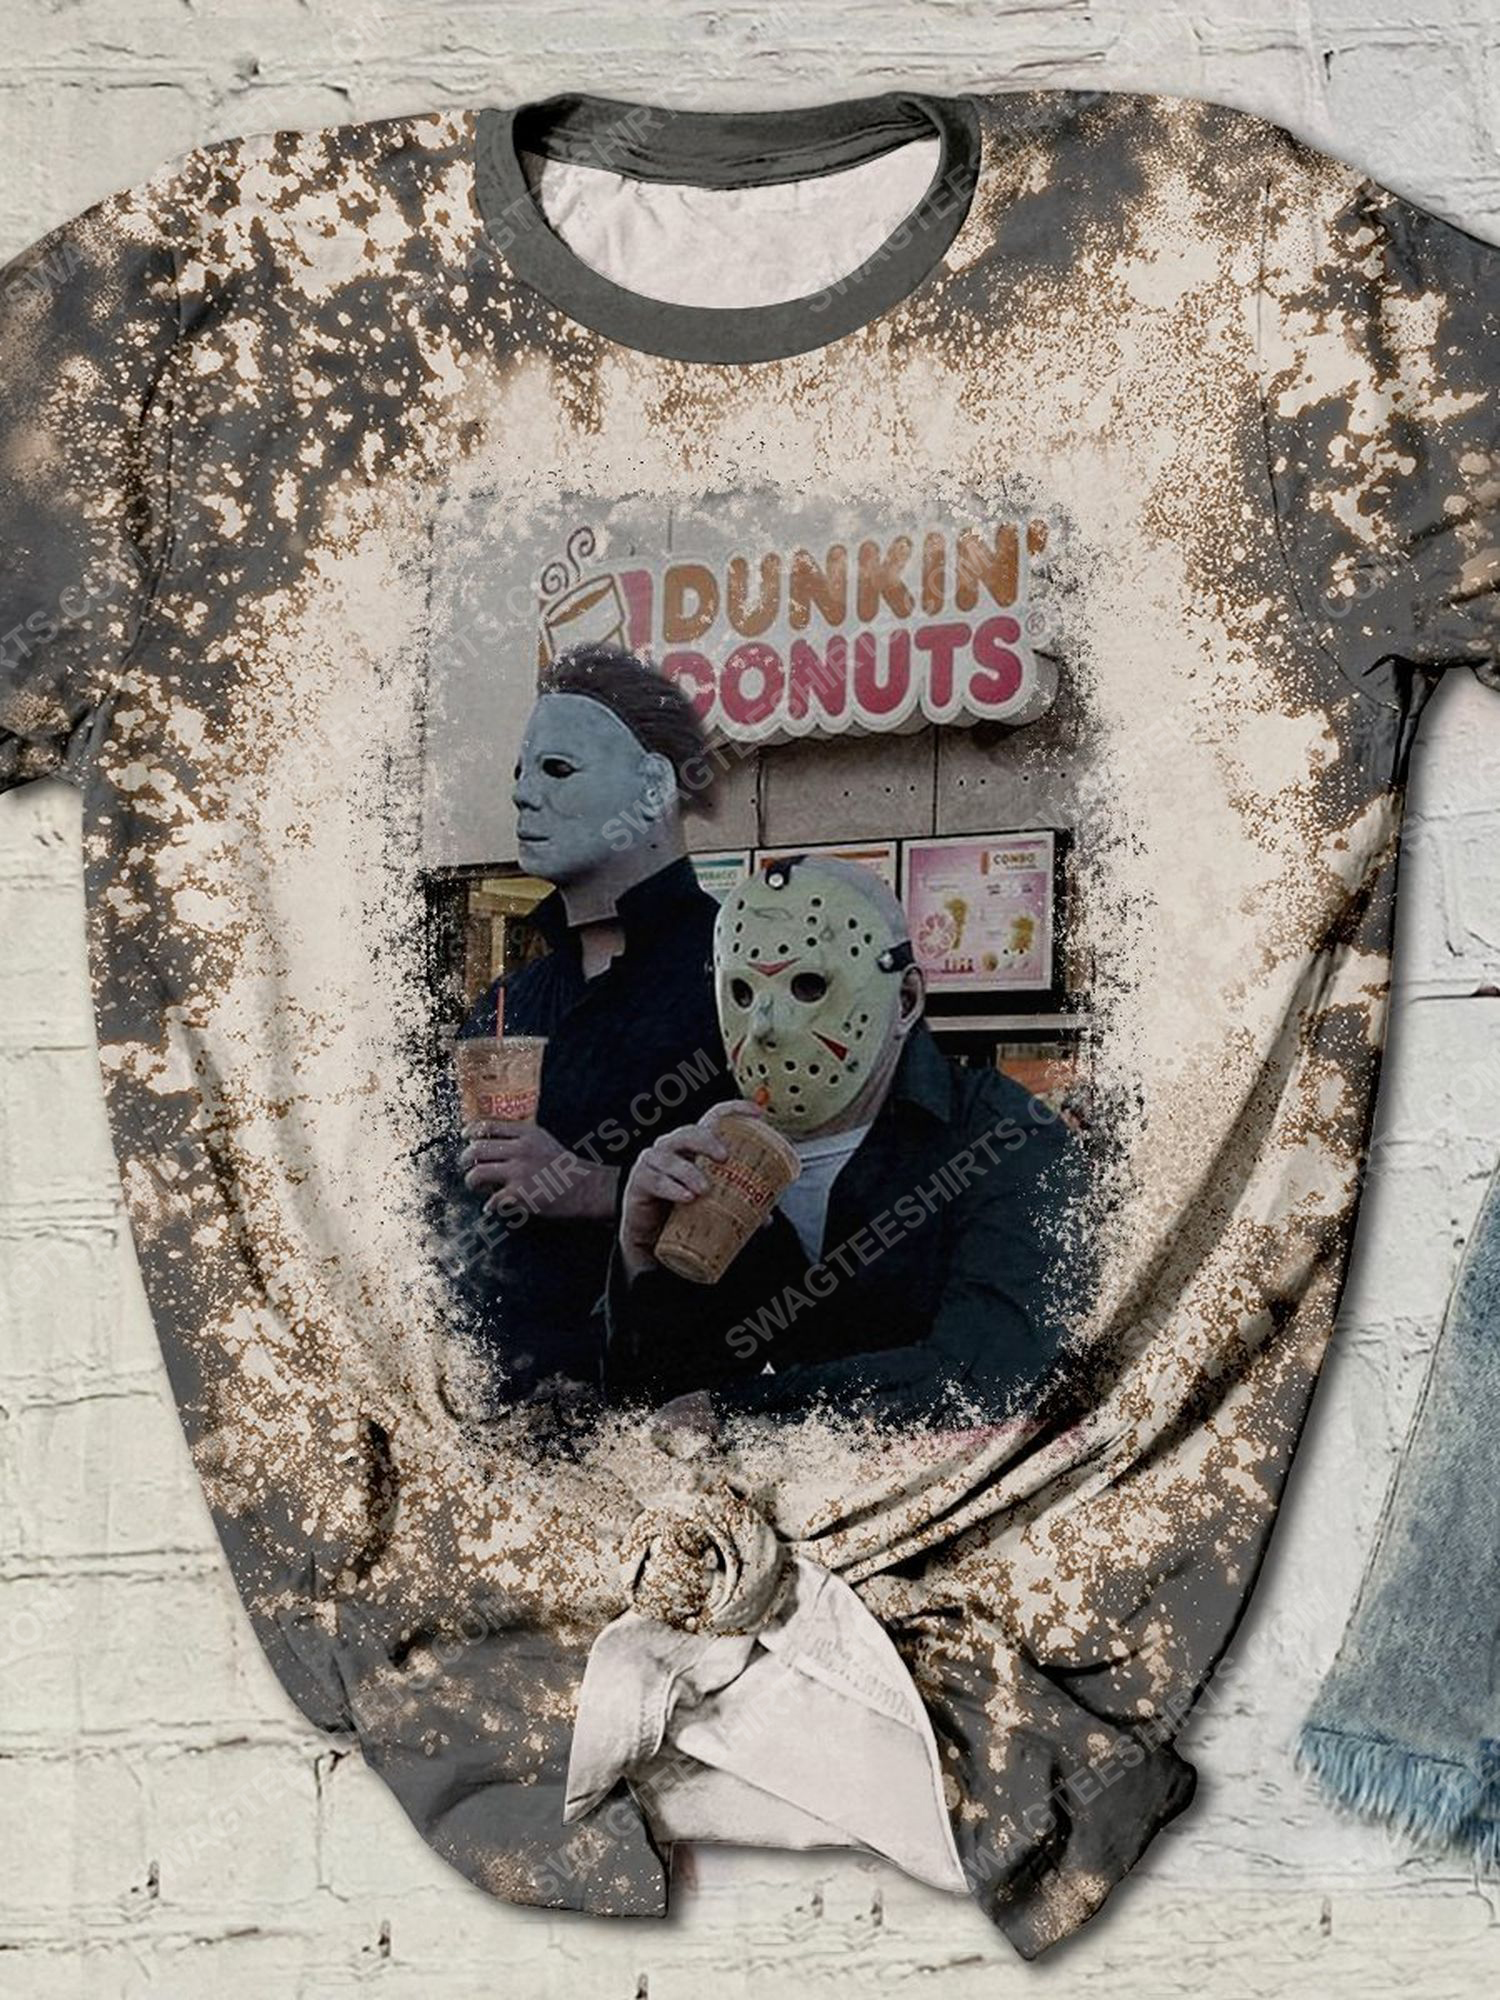 Halloween horror movie characters dunkin donuts bleached shirt 1